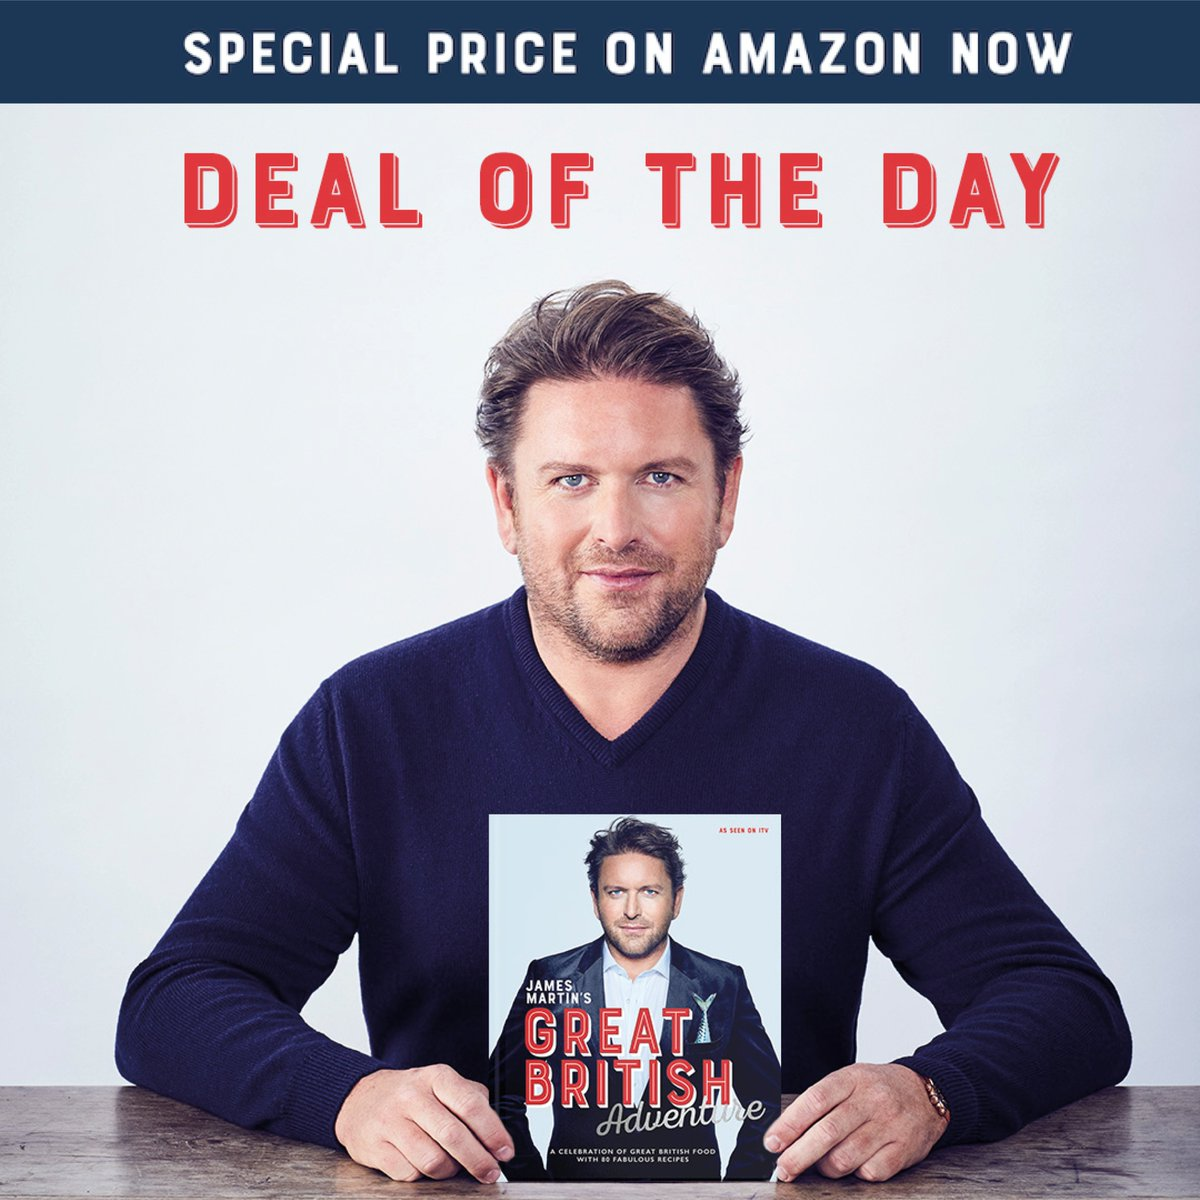 Another deal not to be missed @jamesmartinchef's Great British Adventure, 50% off for Amazon #PrimeDay   Order yours here: https://t.co/ibgEB5cH7Y https://t.co/3gij0468dy